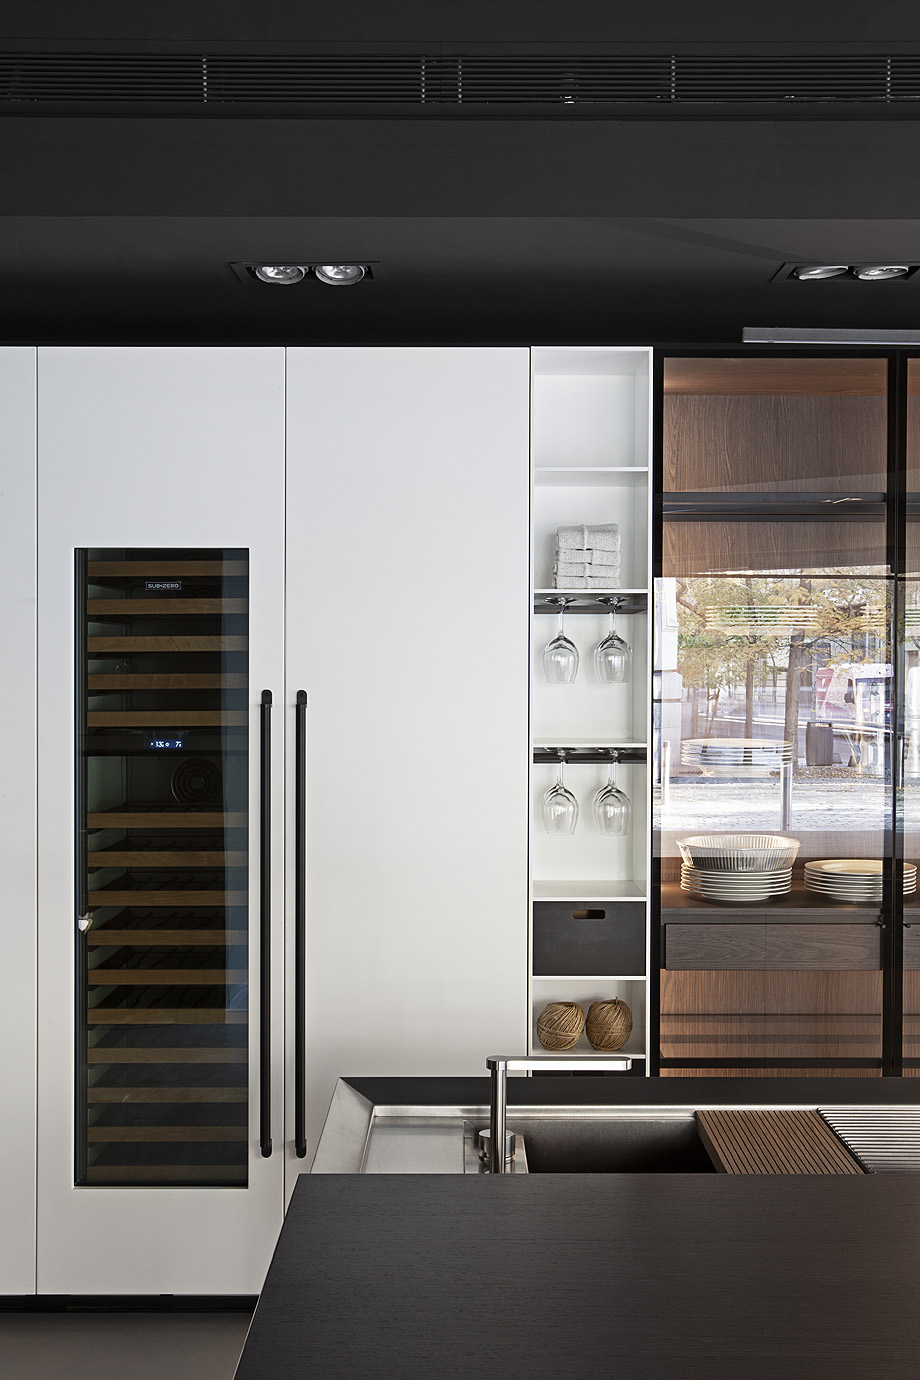 showroom boffi depadova en madrid (7)